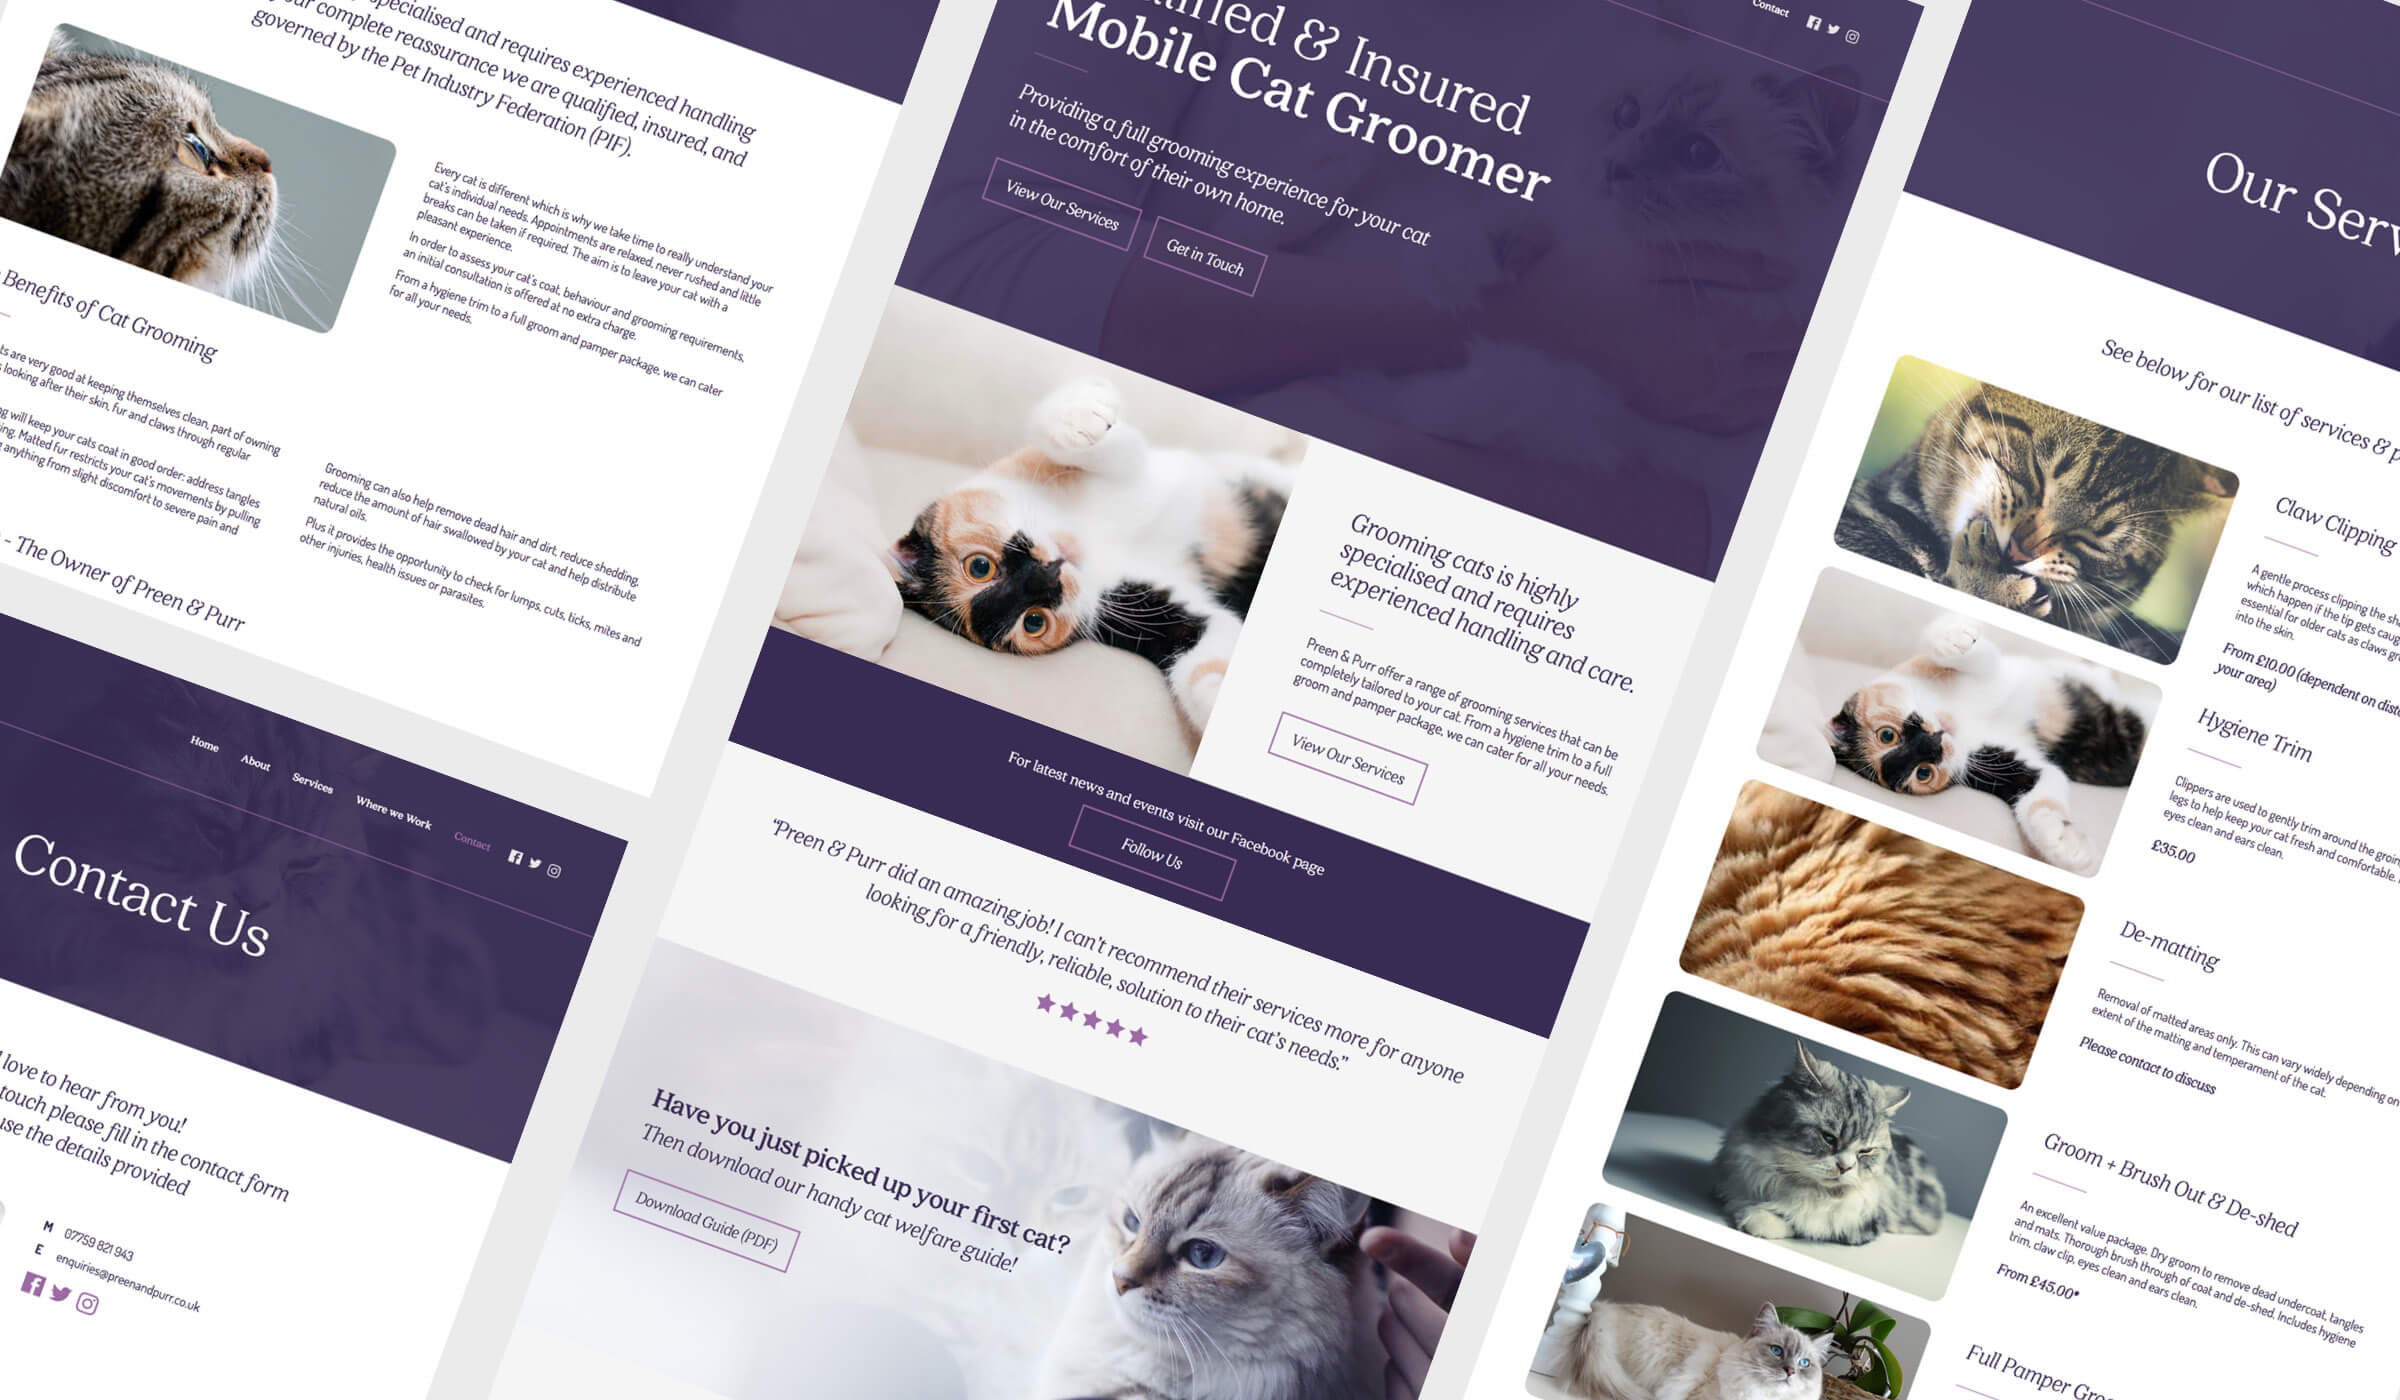 Pet grooming service website design